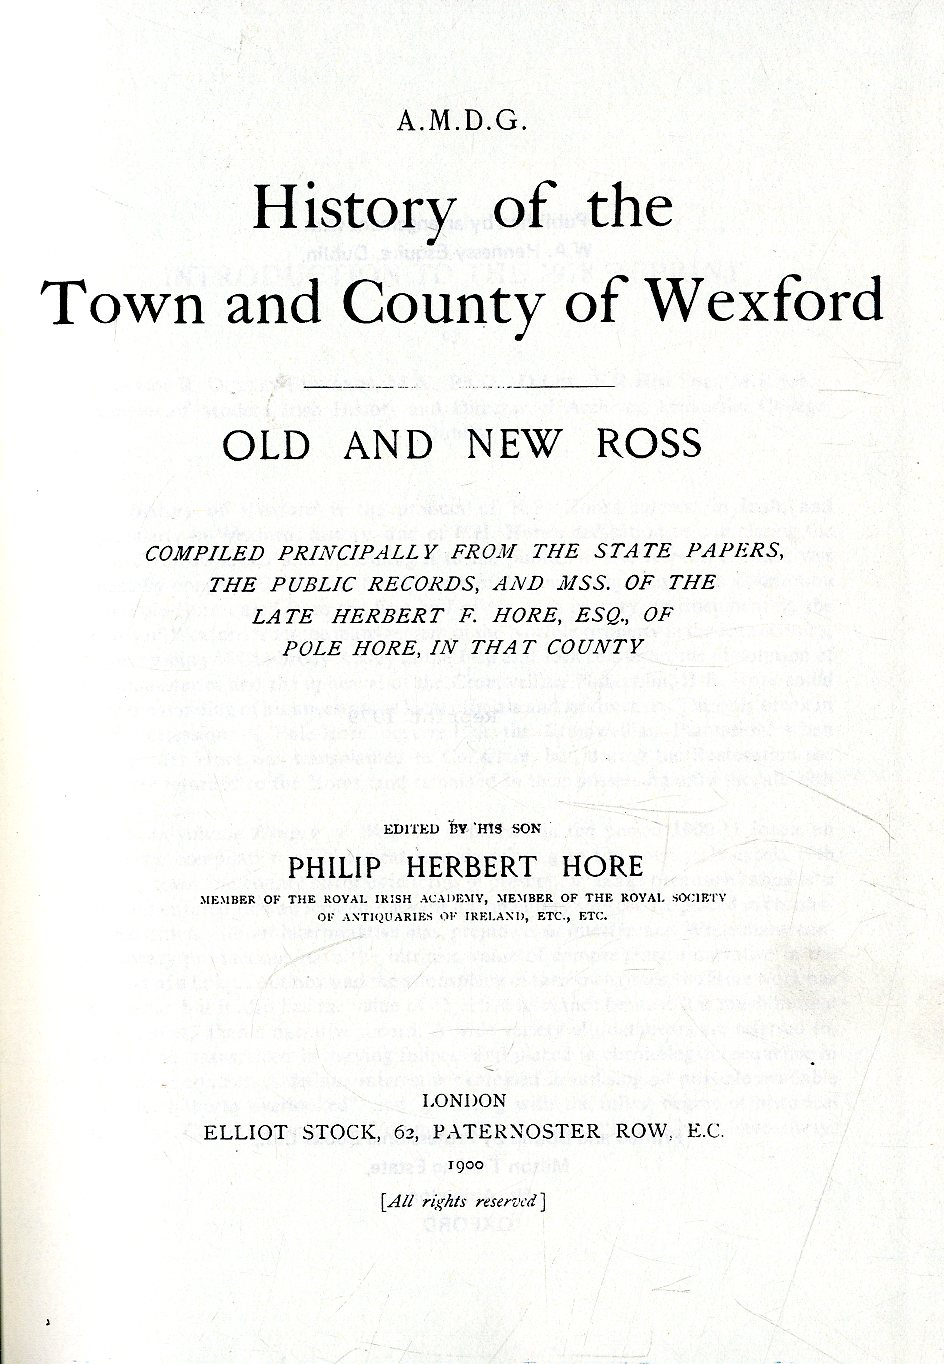 Lot 56 - Co. Wexford: Hore (Philip Herbert) Histo